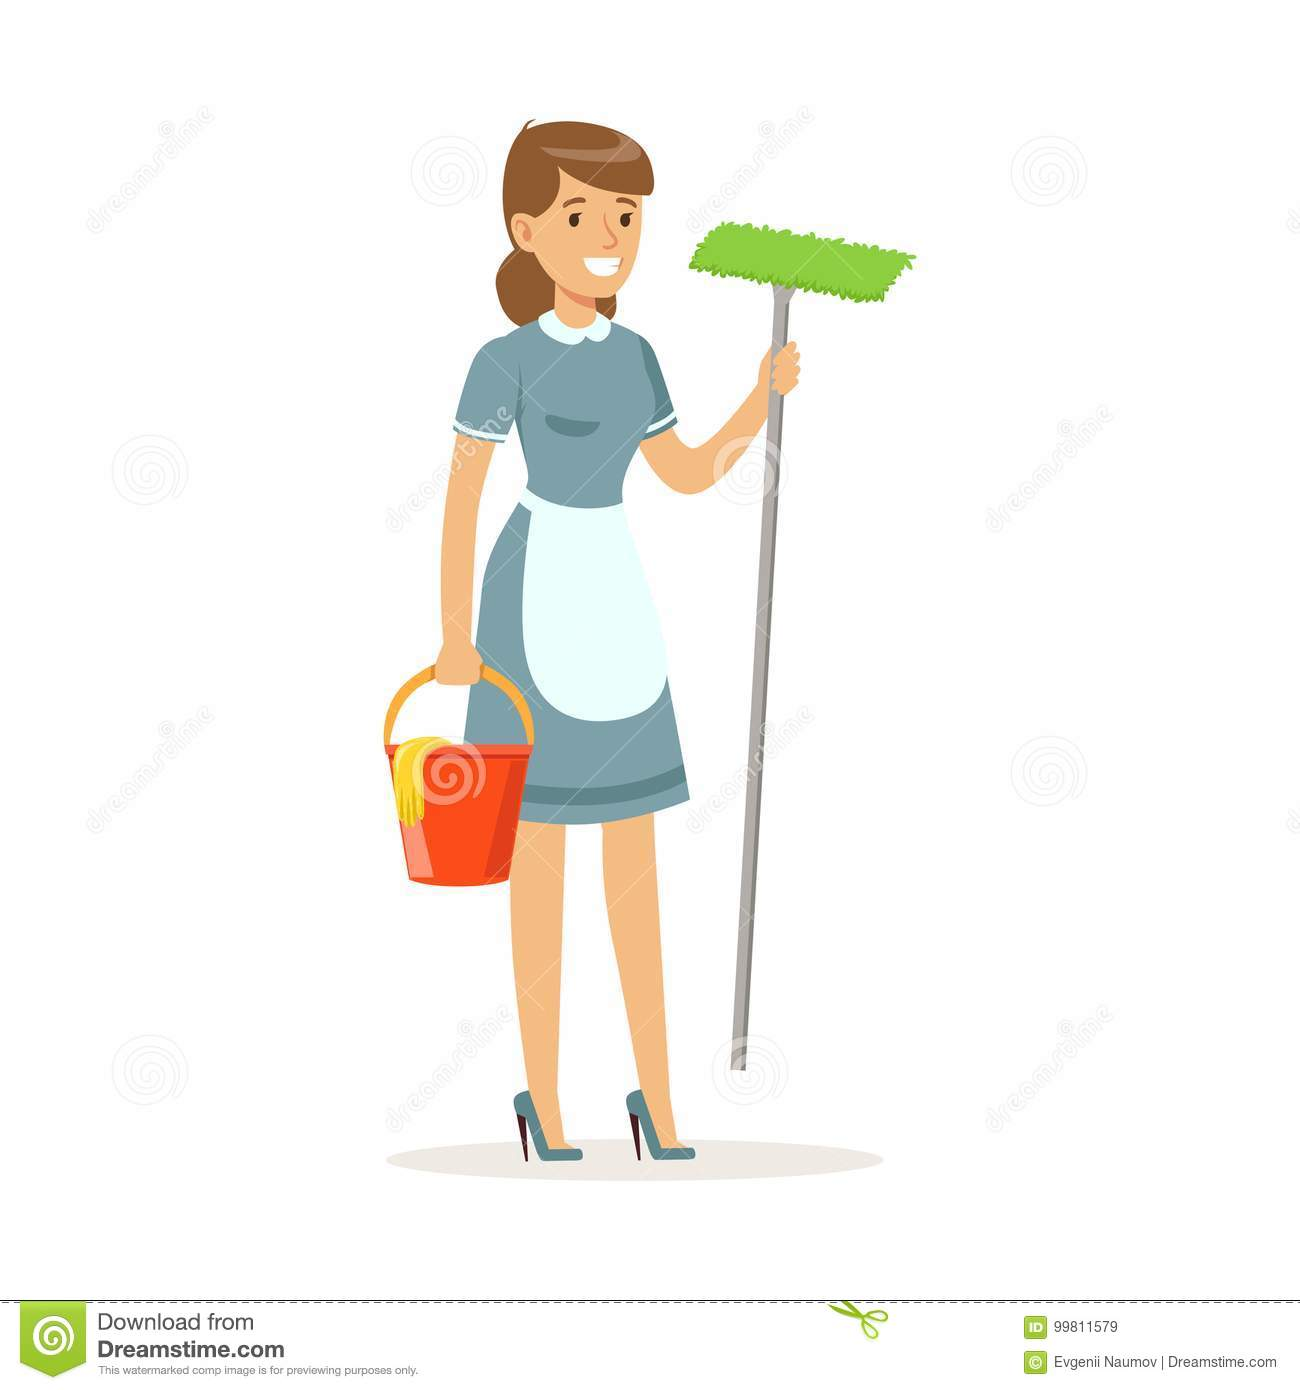 Cheerful Maid Character Wearing Uniform Standing With Bucket And Mop